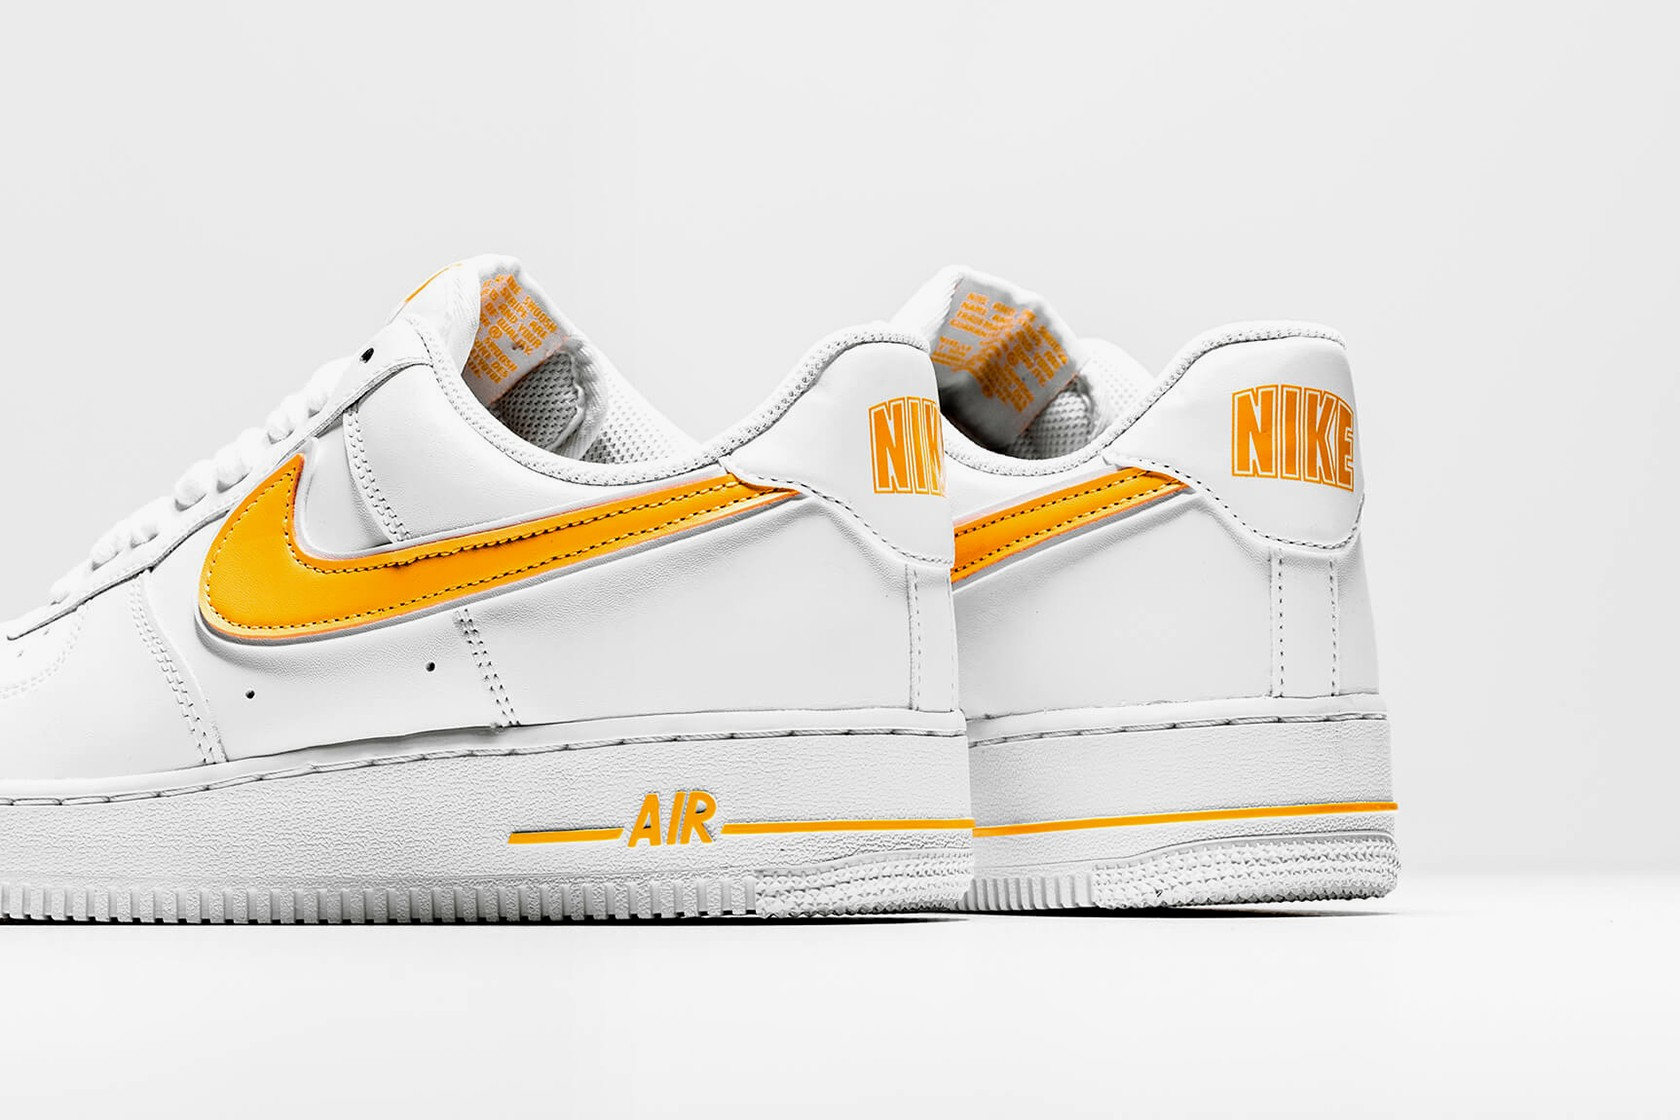 Nike Air Force 1 '07 3 in White